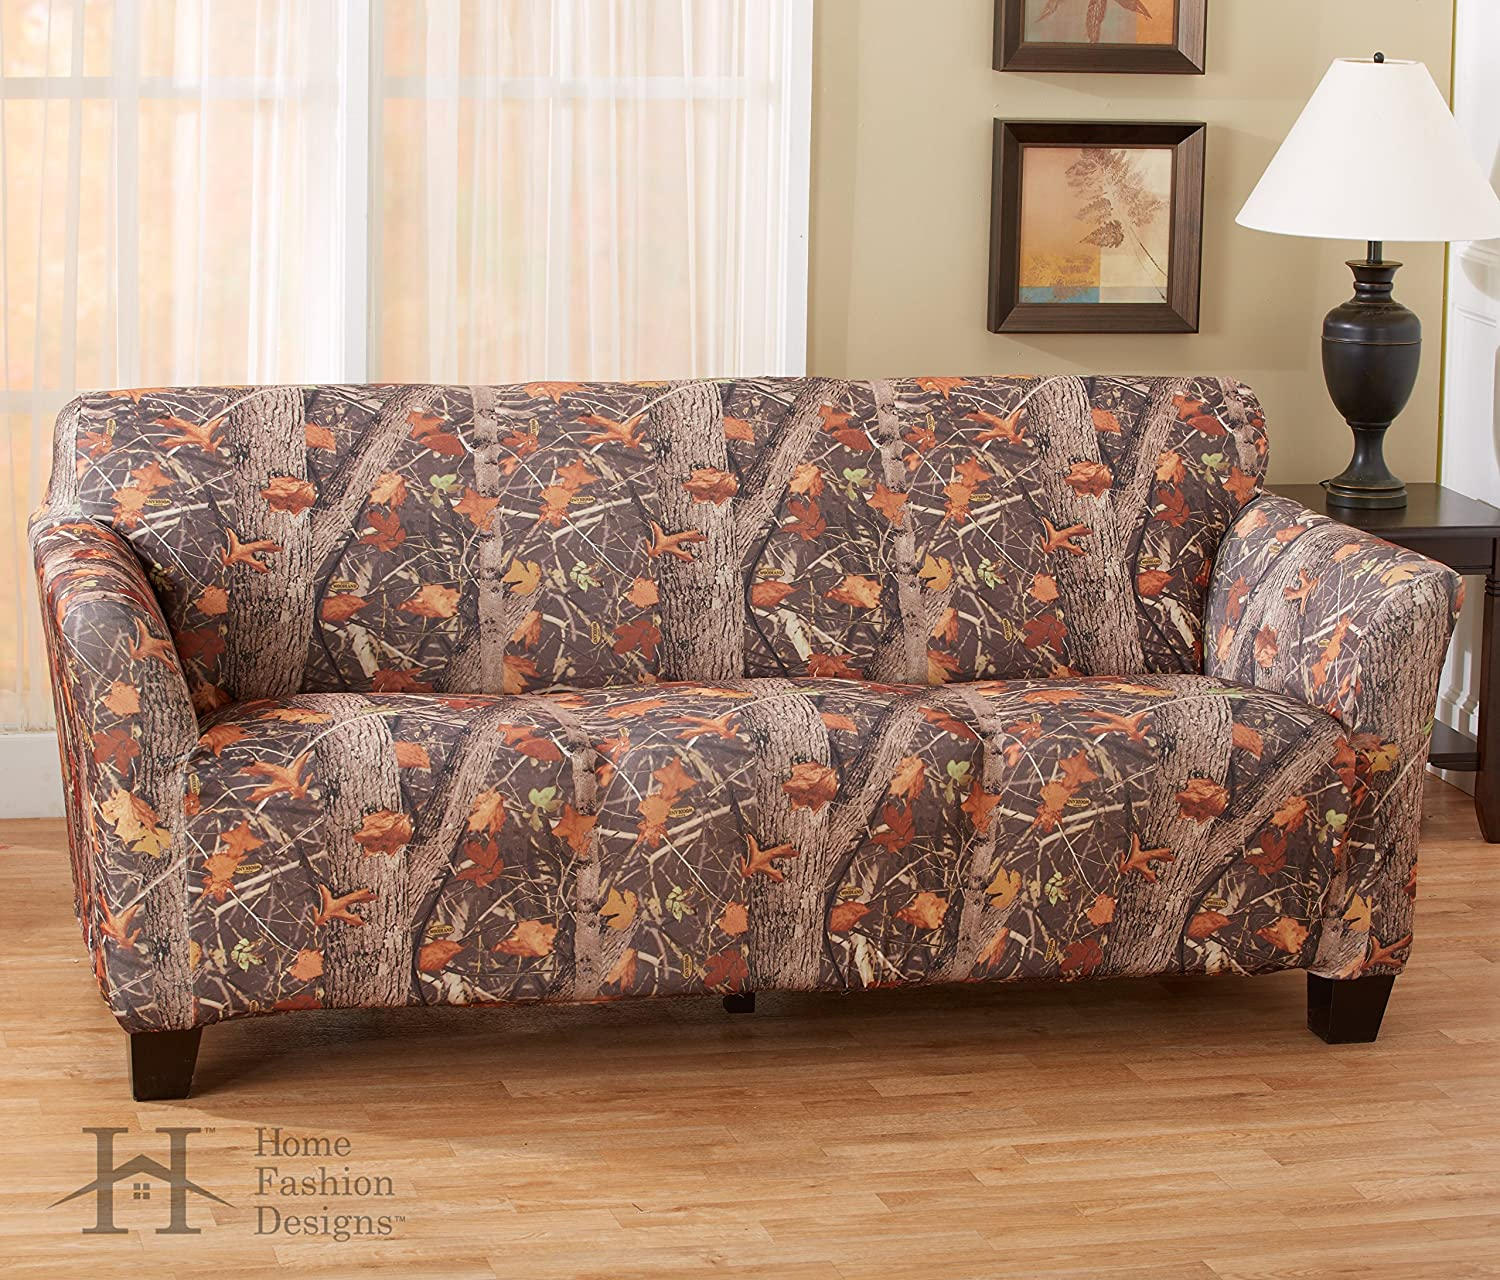 Kings Camo Woodland Shadow Printed Strapless Slipcover. Form Fit, Slip Resistant, Stylish Furniture Shield   Predector. By Home Fashion Designs Brand. (Sofa)